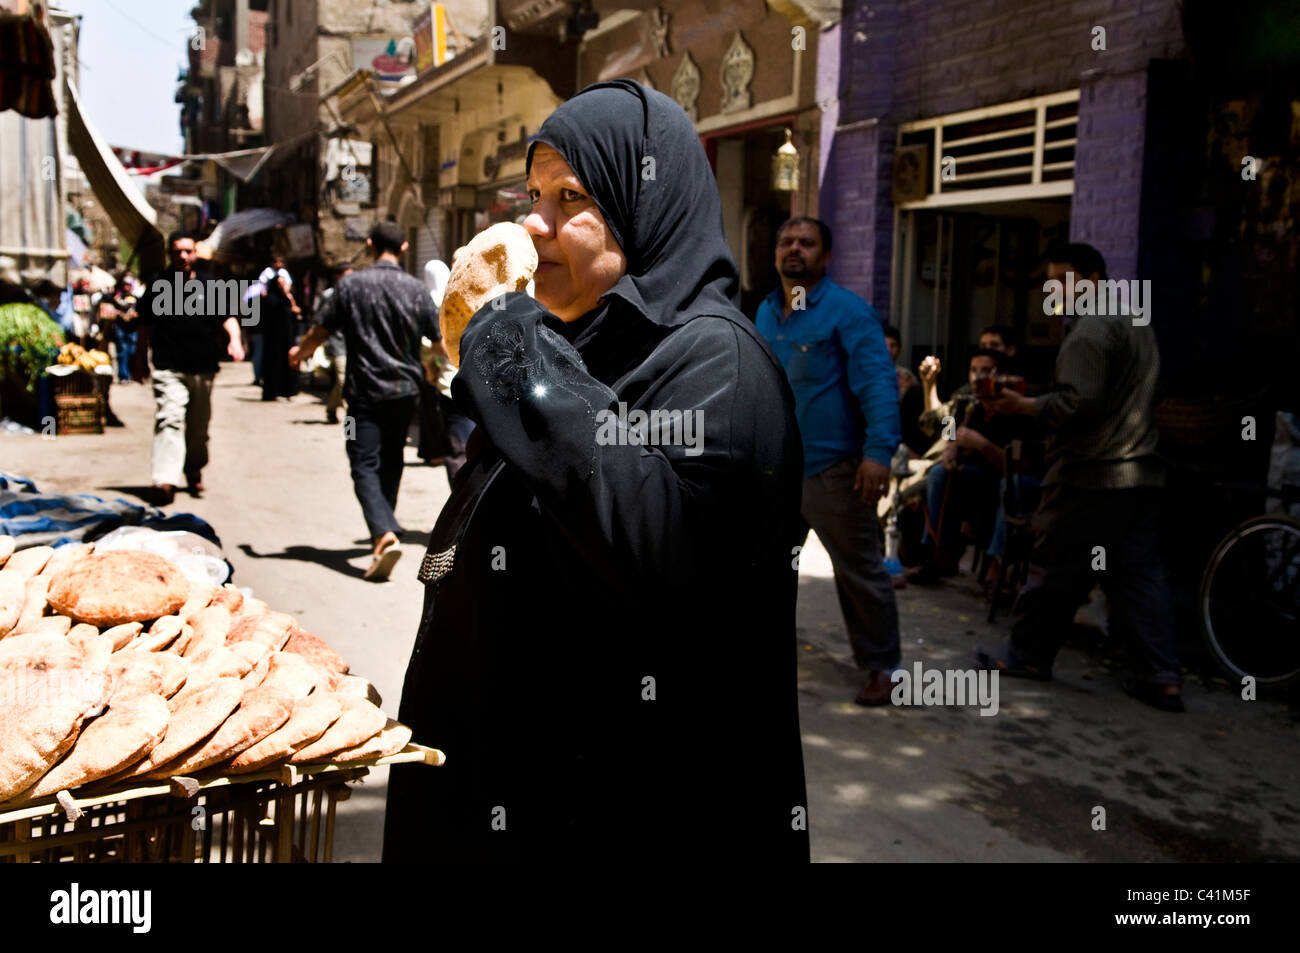 Fresh Pita bread sold on a busy street in Cairo, Egypt. - Stock Image